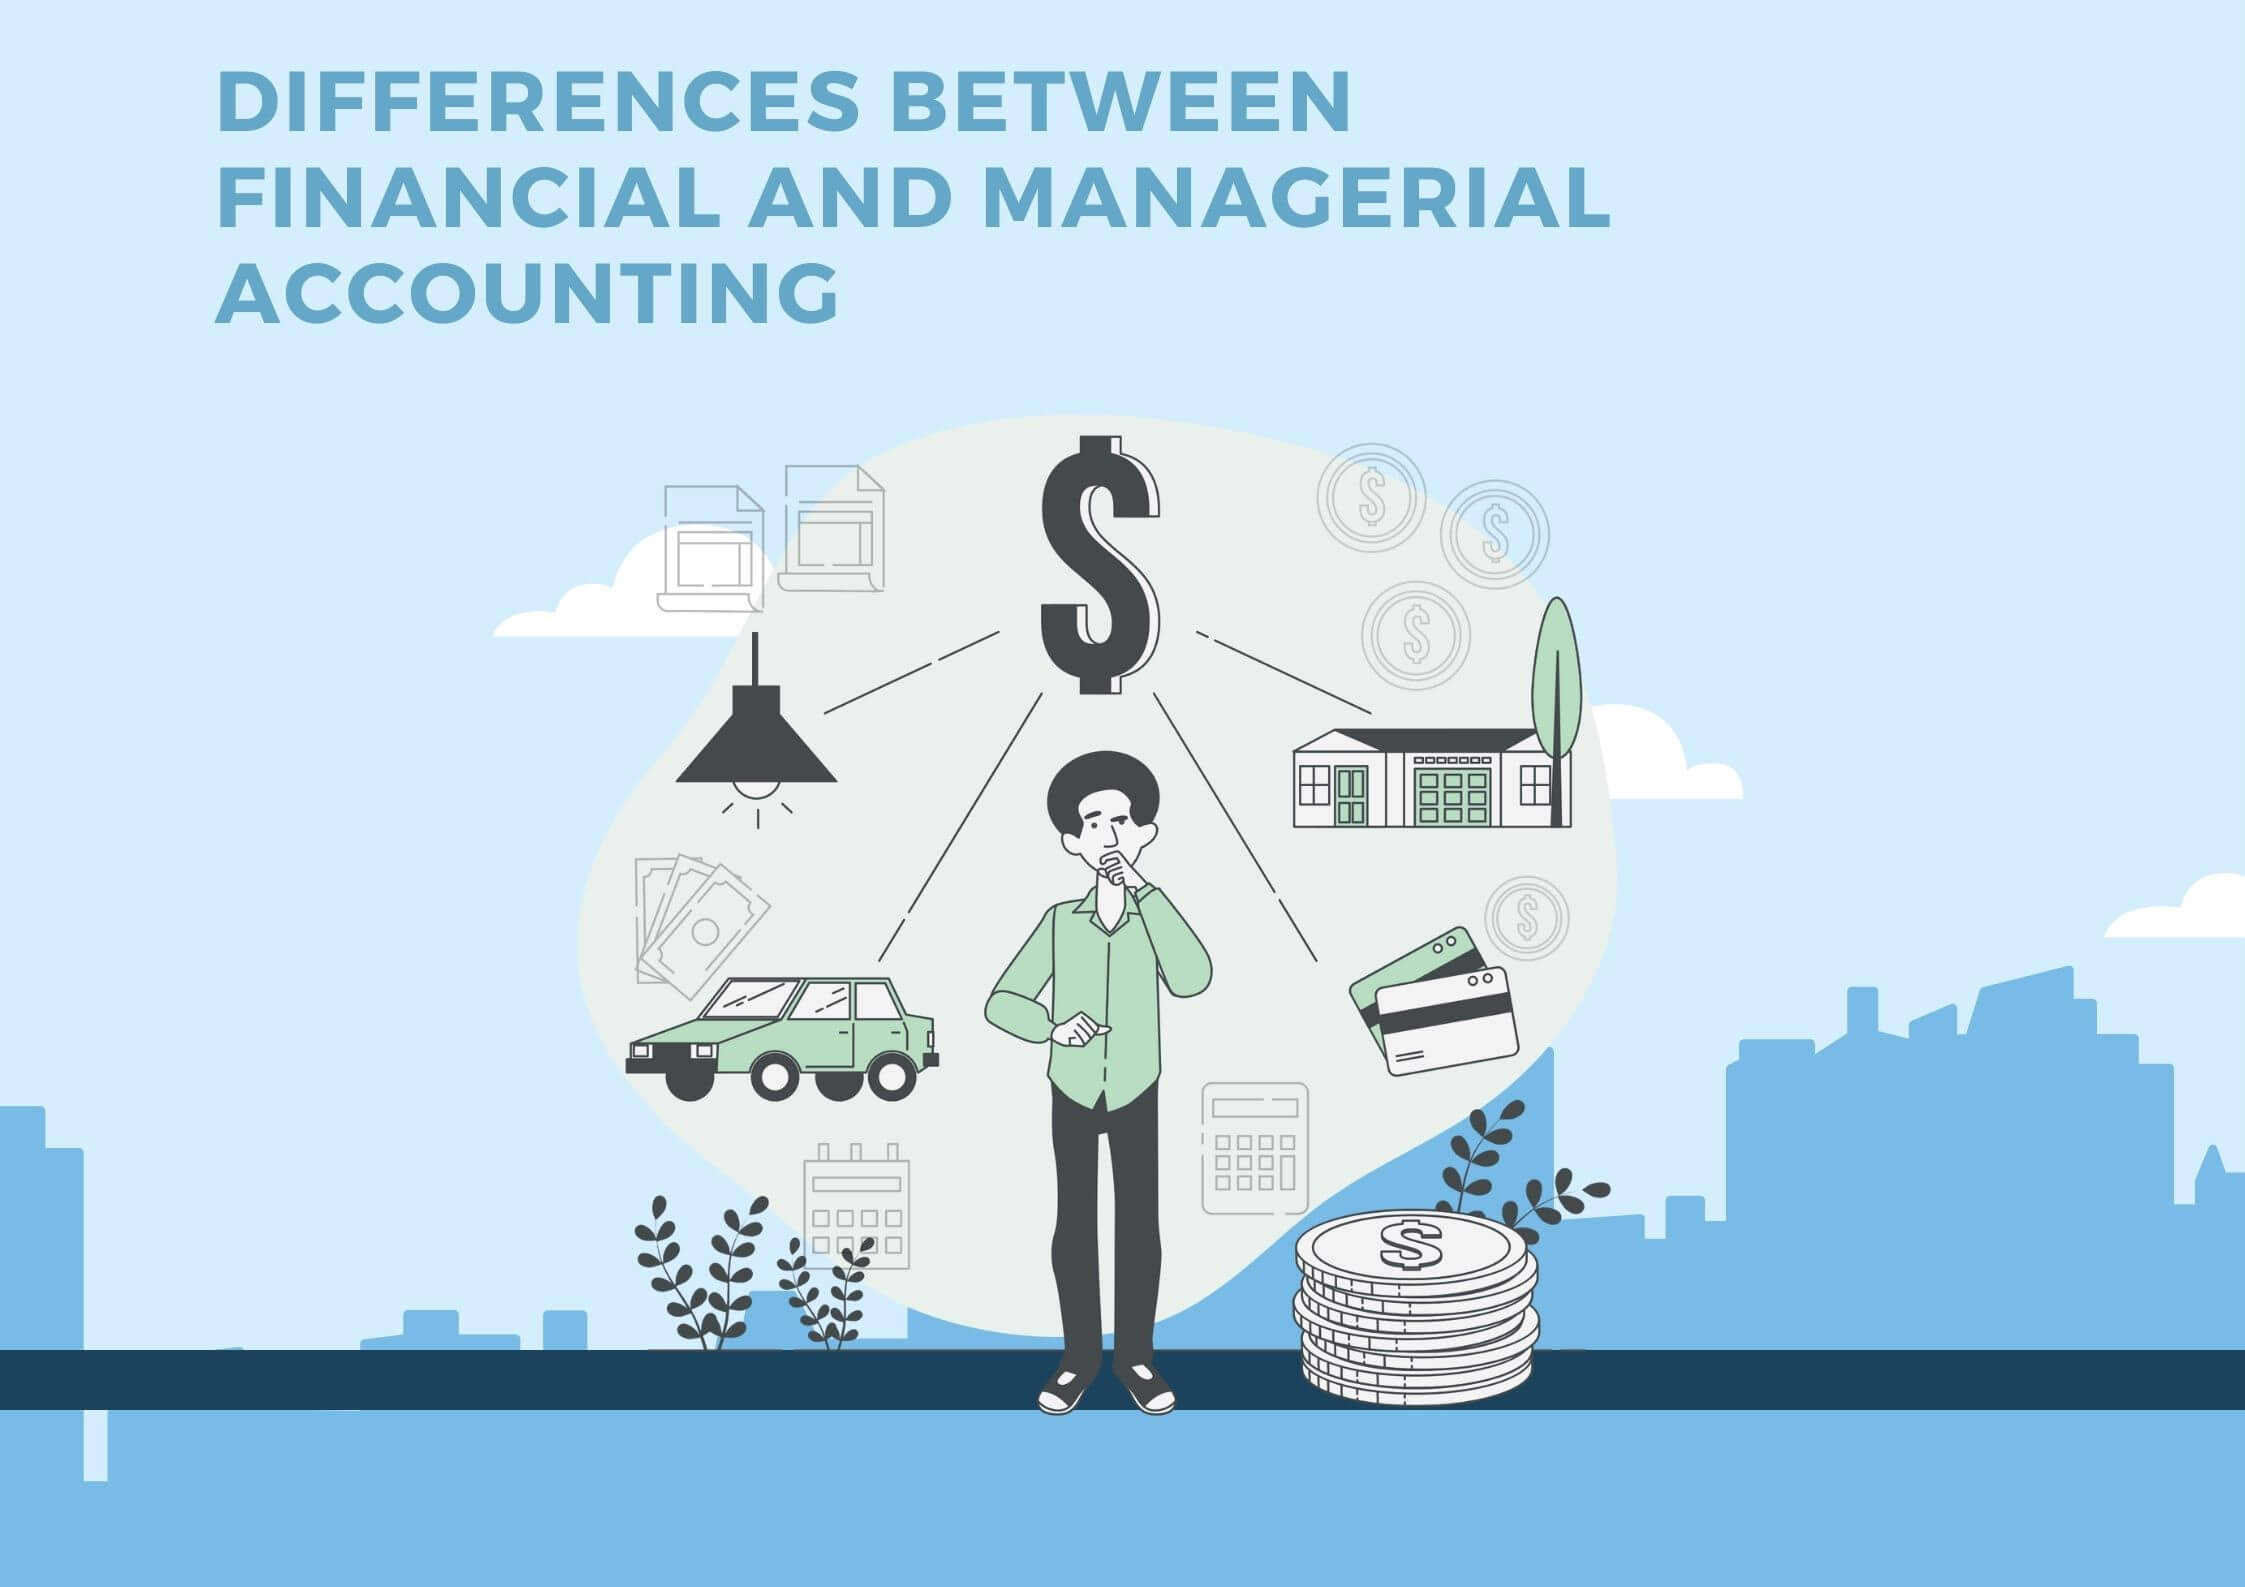 Managerial vs Financial Accounting: Differences between them